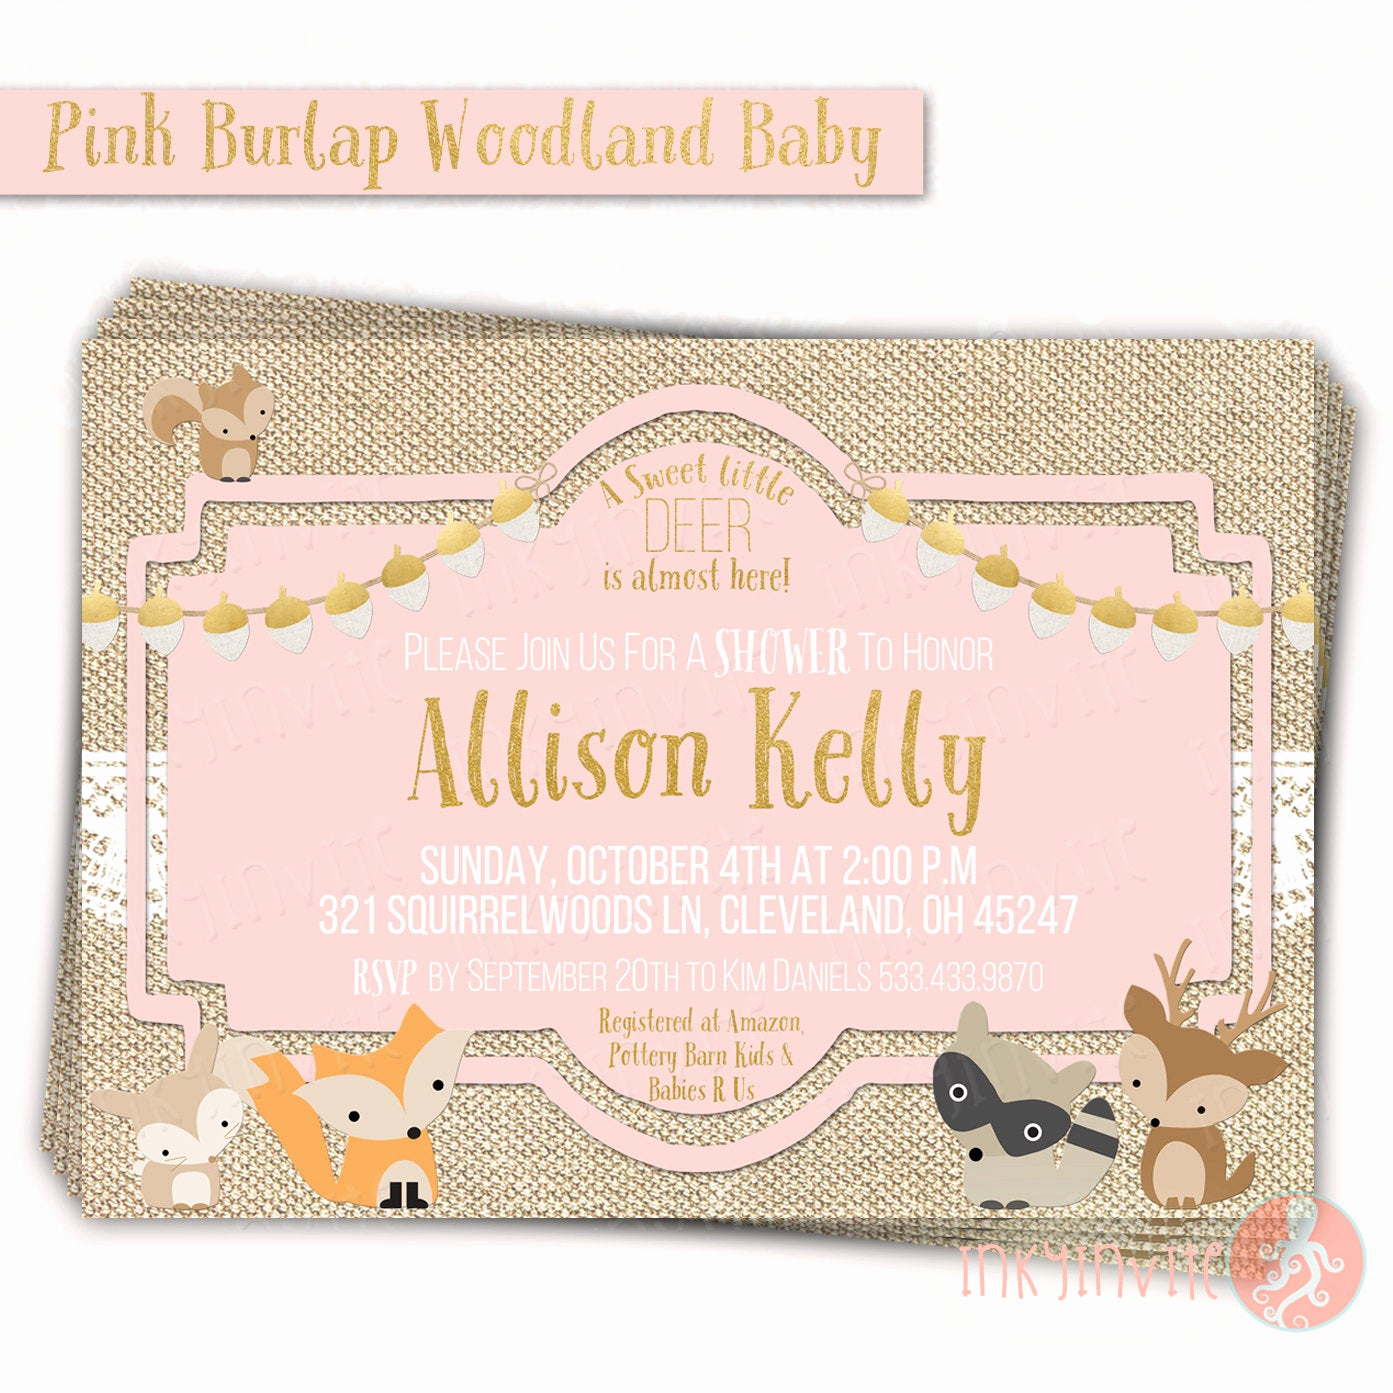 Woodland Baby Shower Invitation Lovely Pink Burlap Woodland Baby Shower Invitation Baby Girl